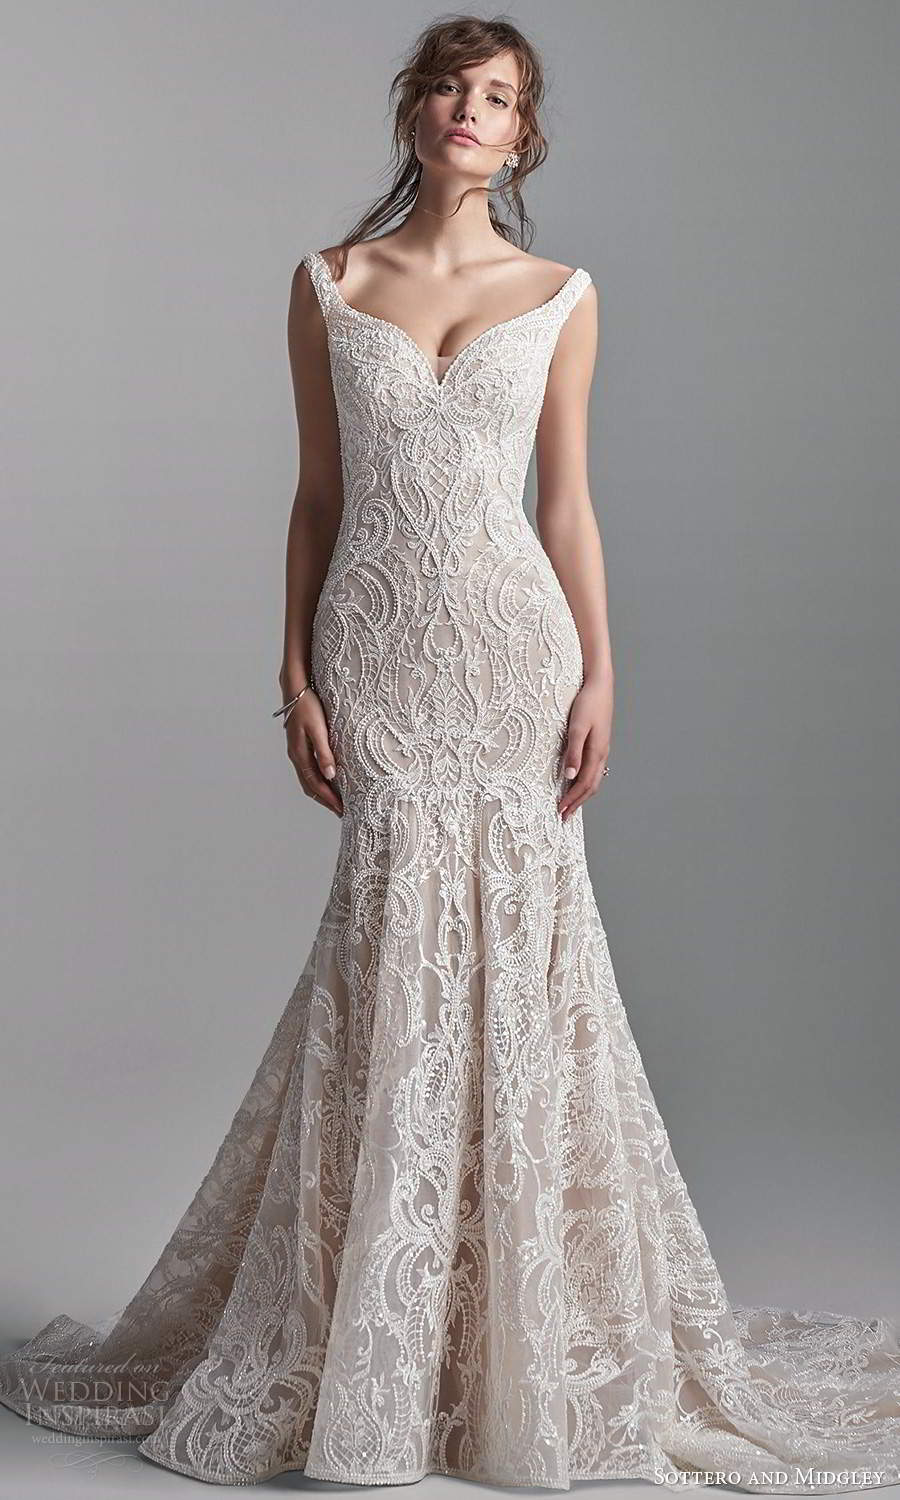 sottero midgley fall 2020 bridal off shoulder straps sweetheart neckline fully embellished lace fit flare mermaid wedding dress chapel train (12) mv